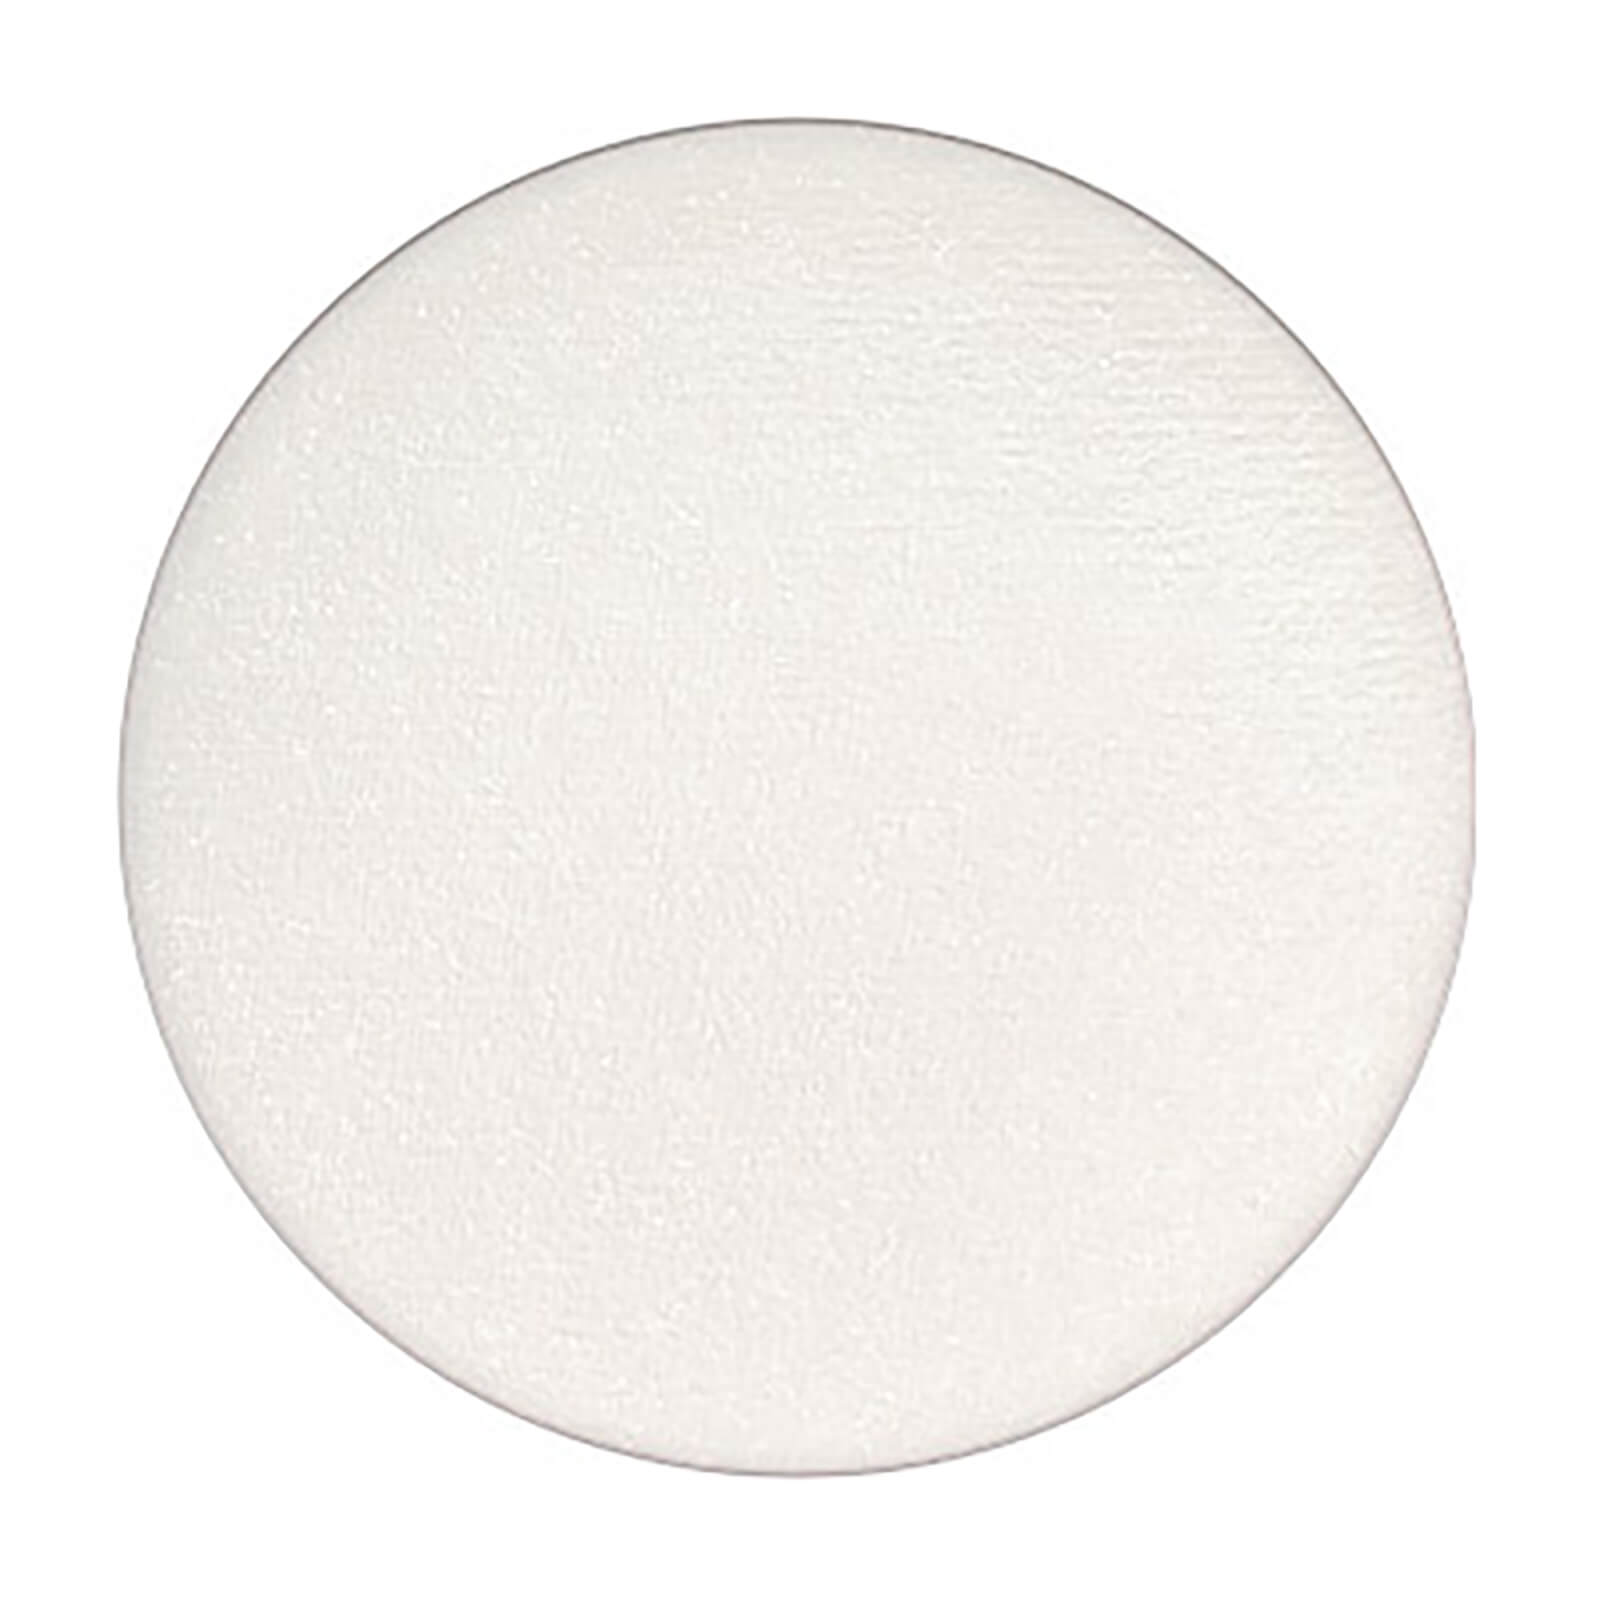 MAC Small Eye Shadow Pro Palette Refill 1.5g (Various Shades) - Frost - White Frost